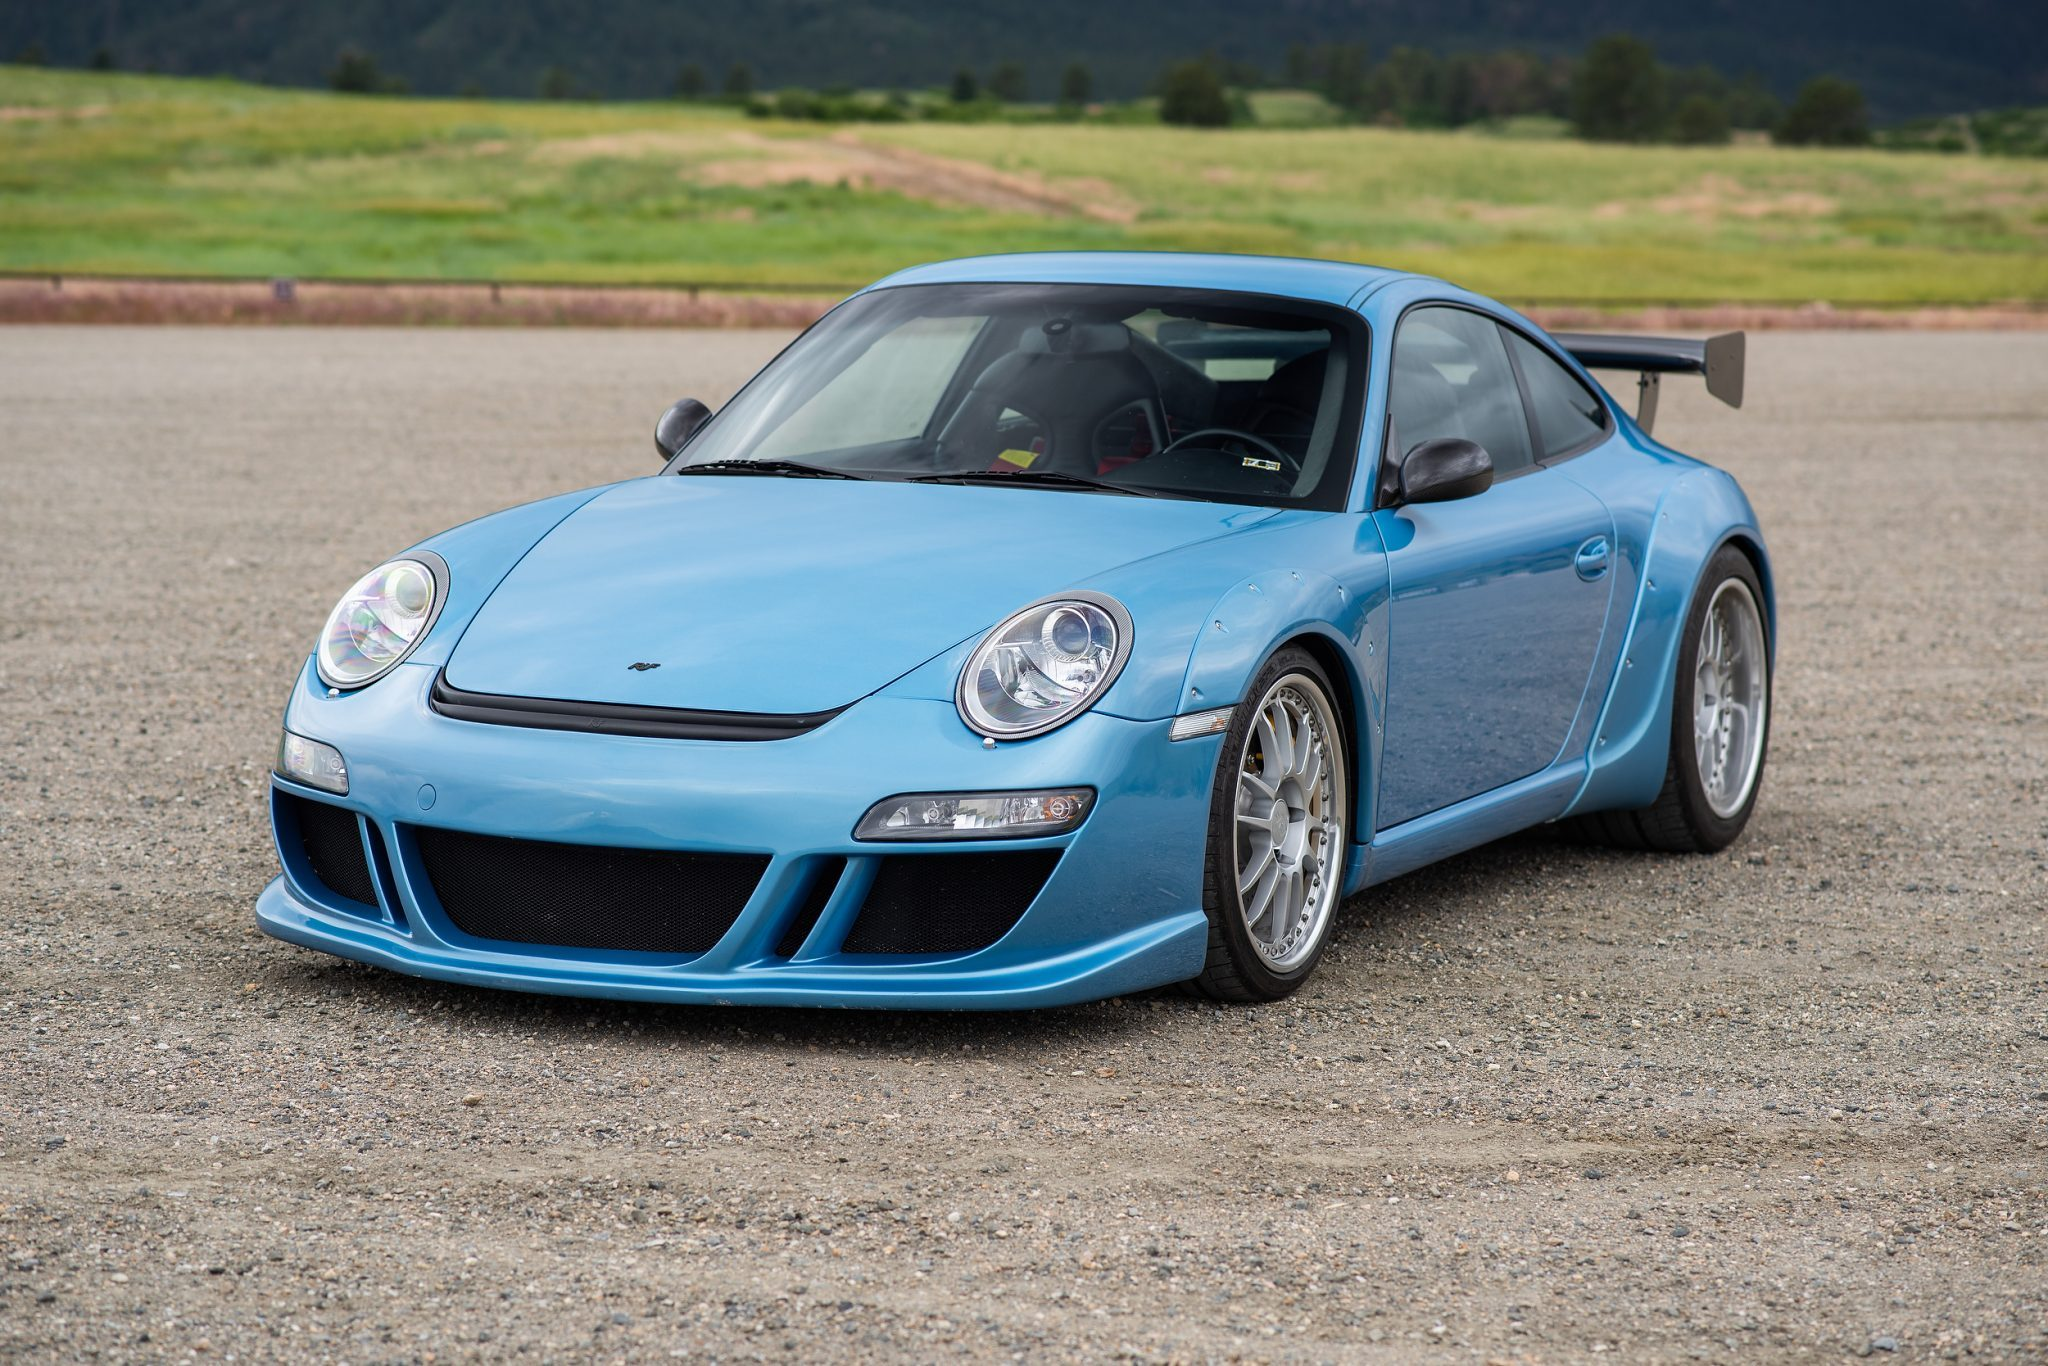 A splendid 2007 RUF RGT finished in Lake Placid Blue Metallic just found a new owner at an auction in the United States. Let's see what makes it unique.